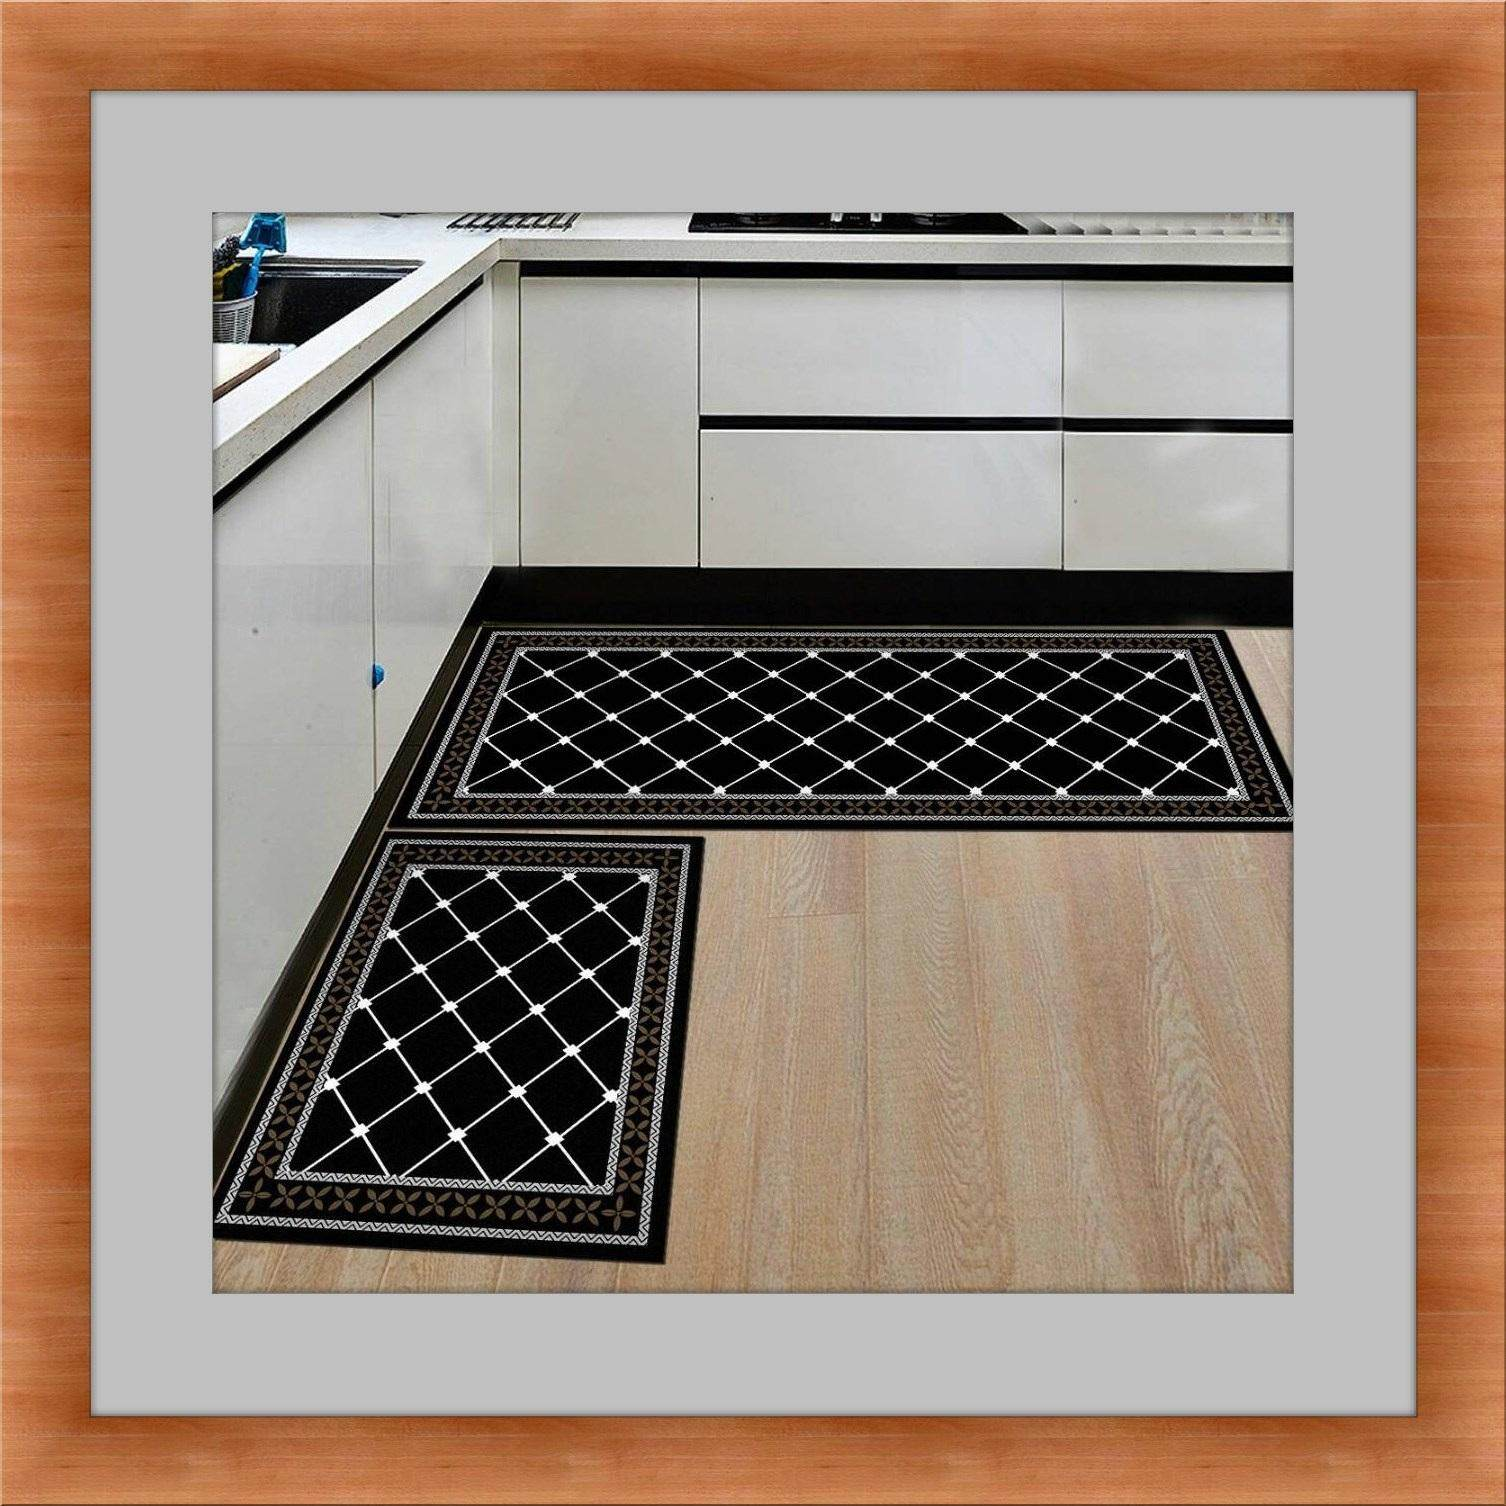 kitchen carpet knife holder home rugs carpets buy at best price in 1 free mat floor bathroom